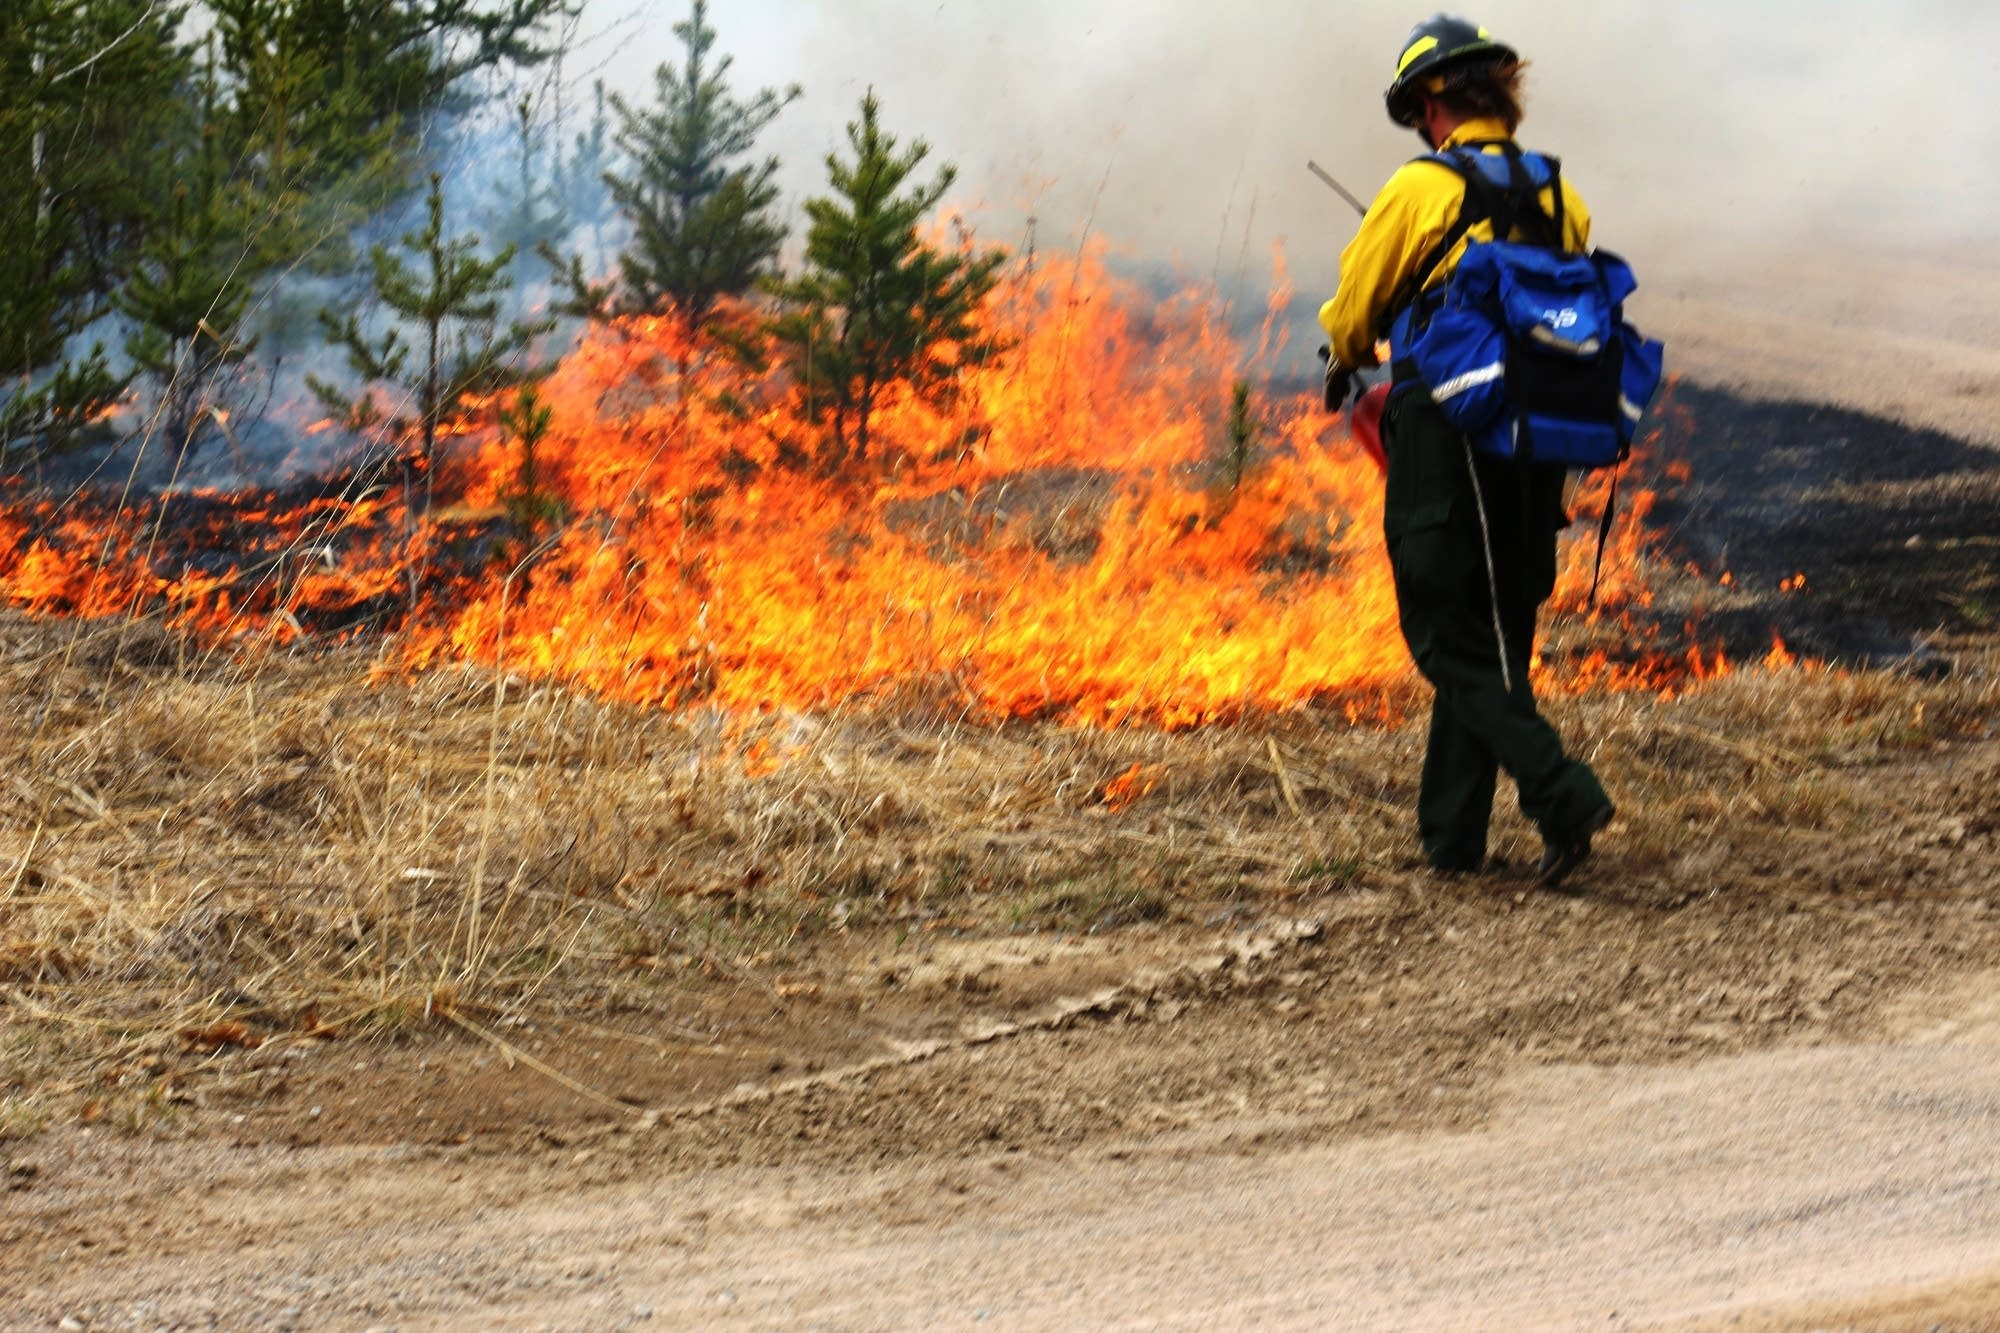 Red Flag Warning issued for county; open burning discouraged until Tuesday evening